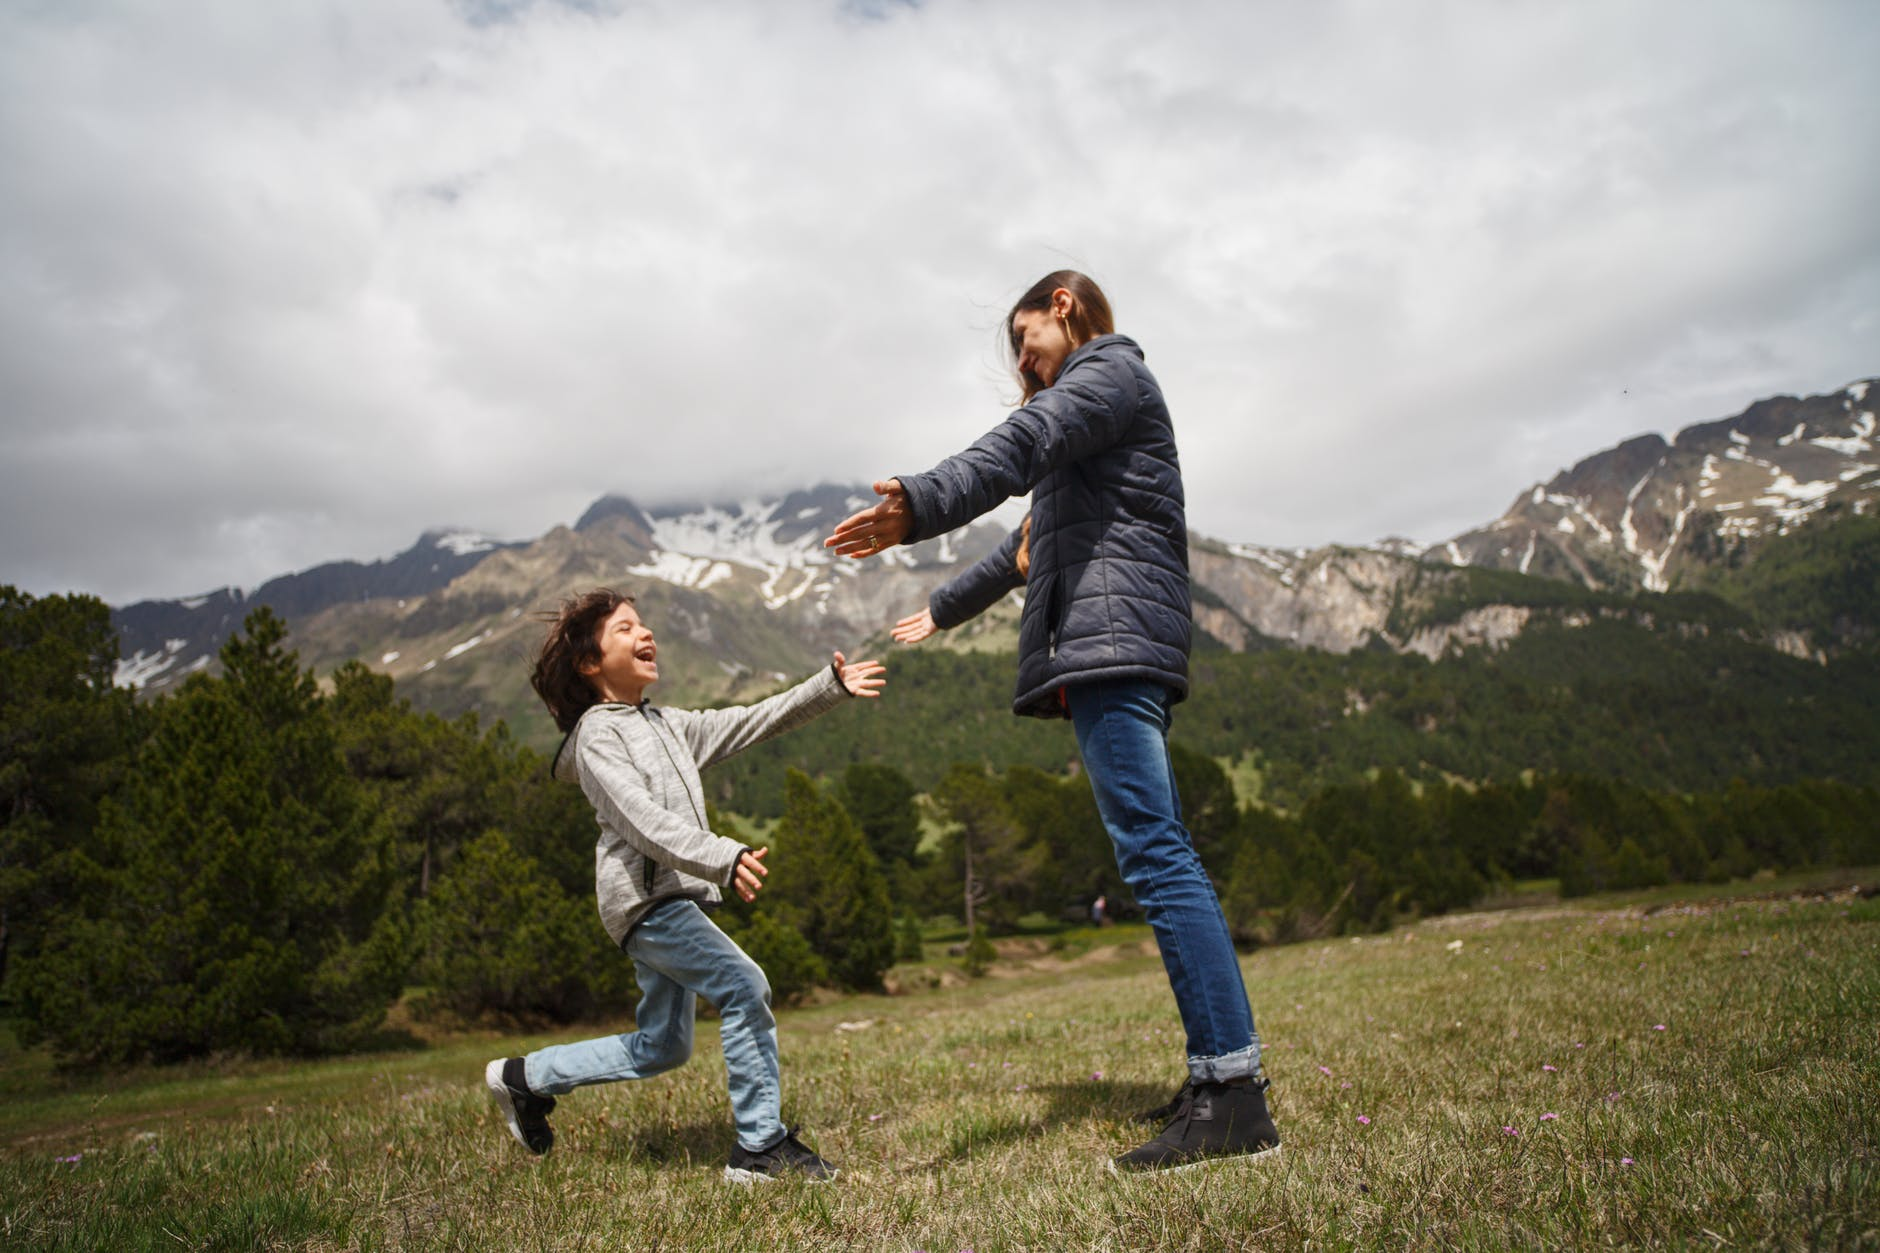 woman and child playing on green grass field near mountain